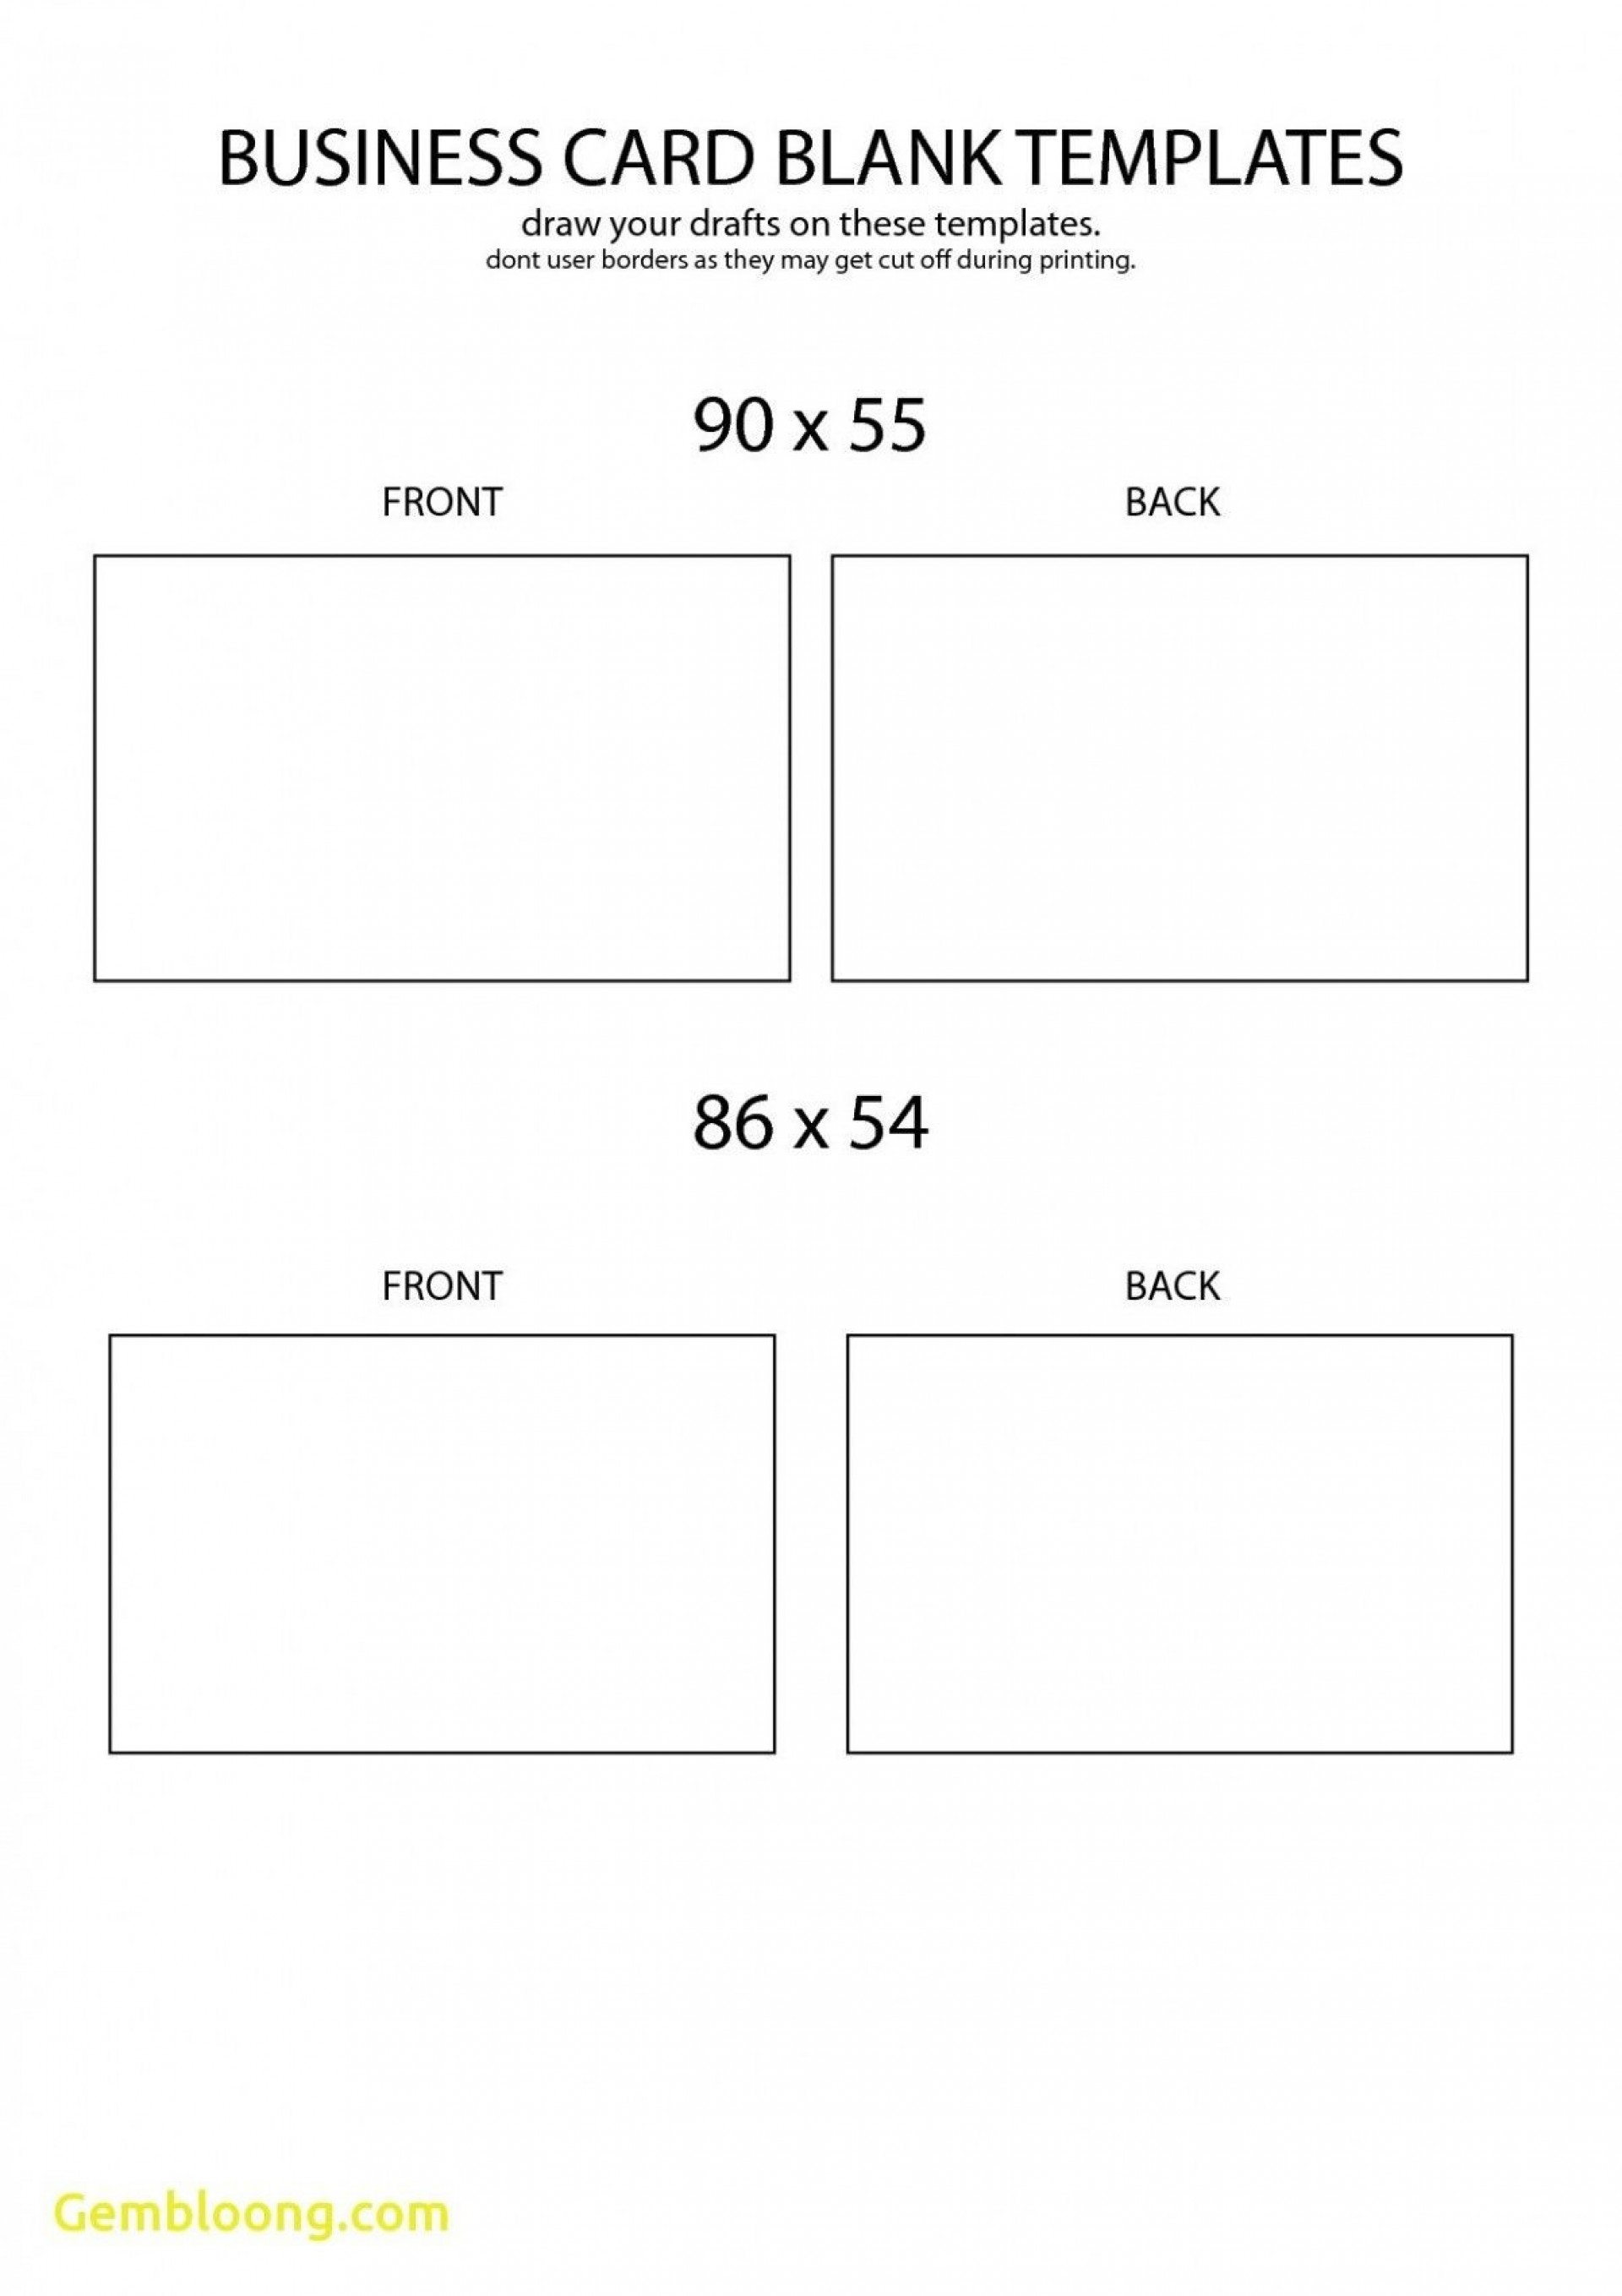 009 Dreaded Busines Card Blank Template Image  Download Free1920